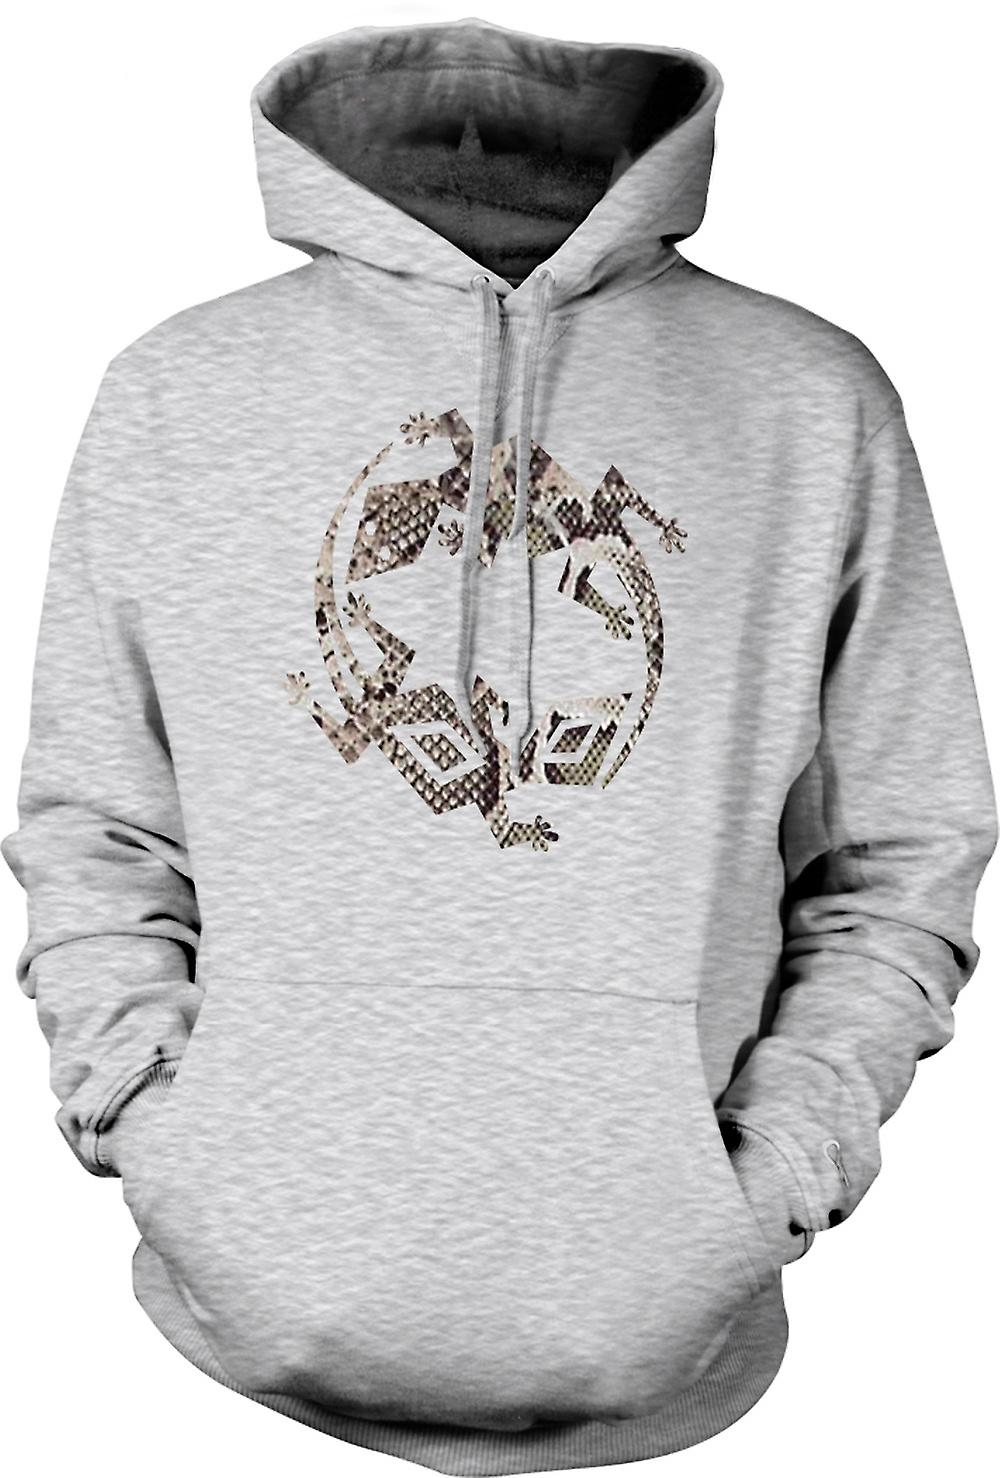 Mens Hoodie - Lizard and Gecko Symbol - Snake Skin